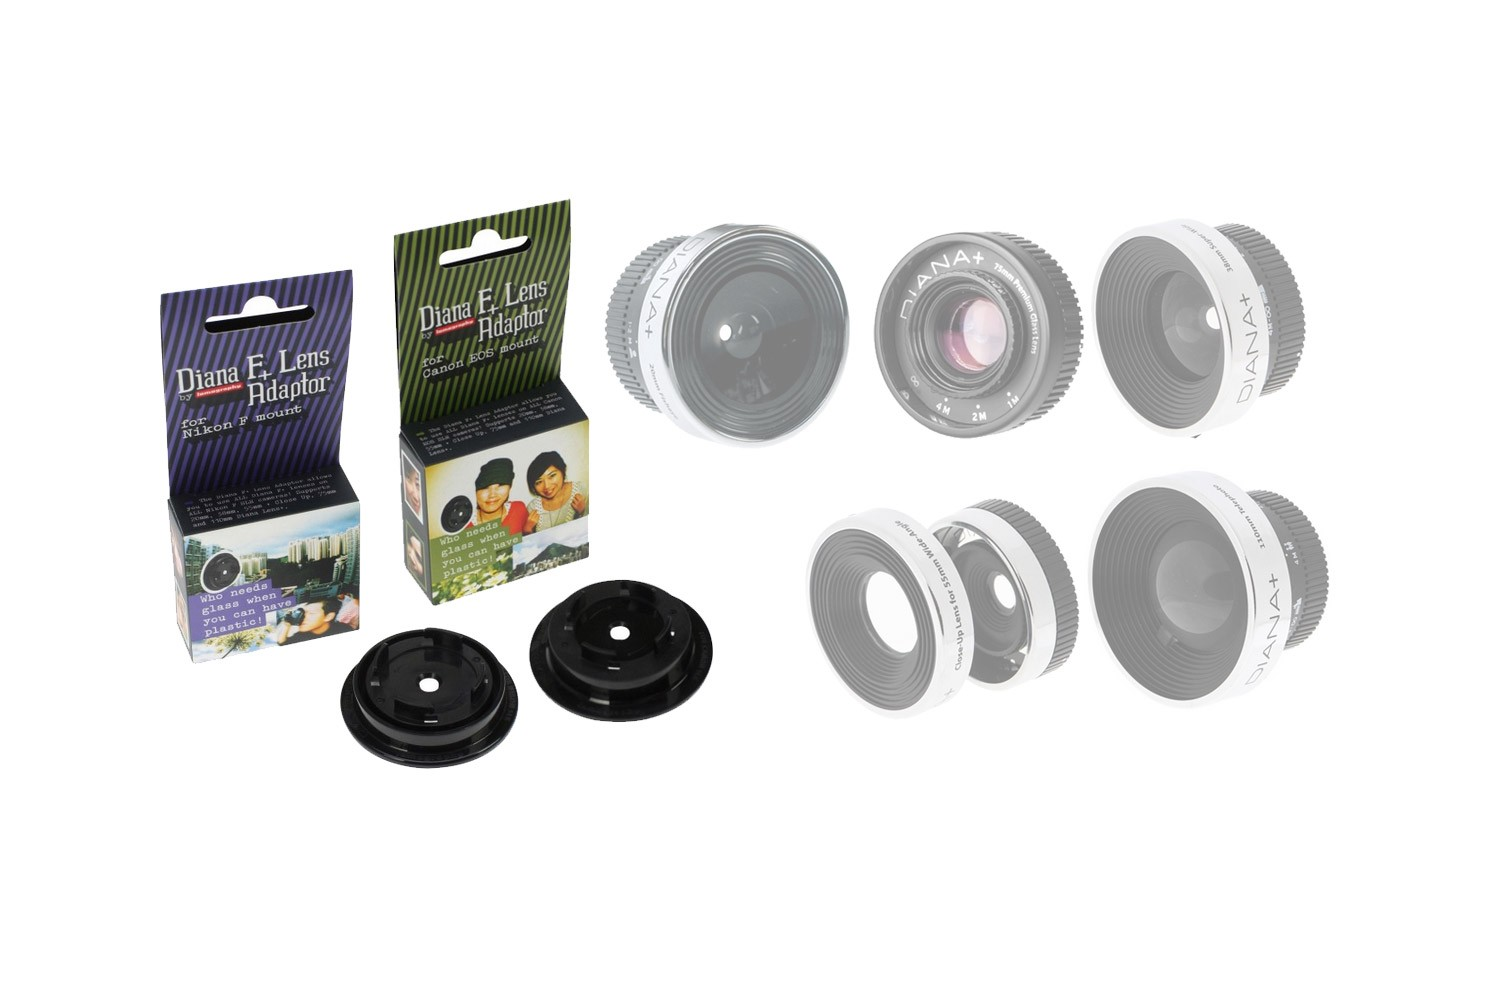 Diana Lens DIY Bundle